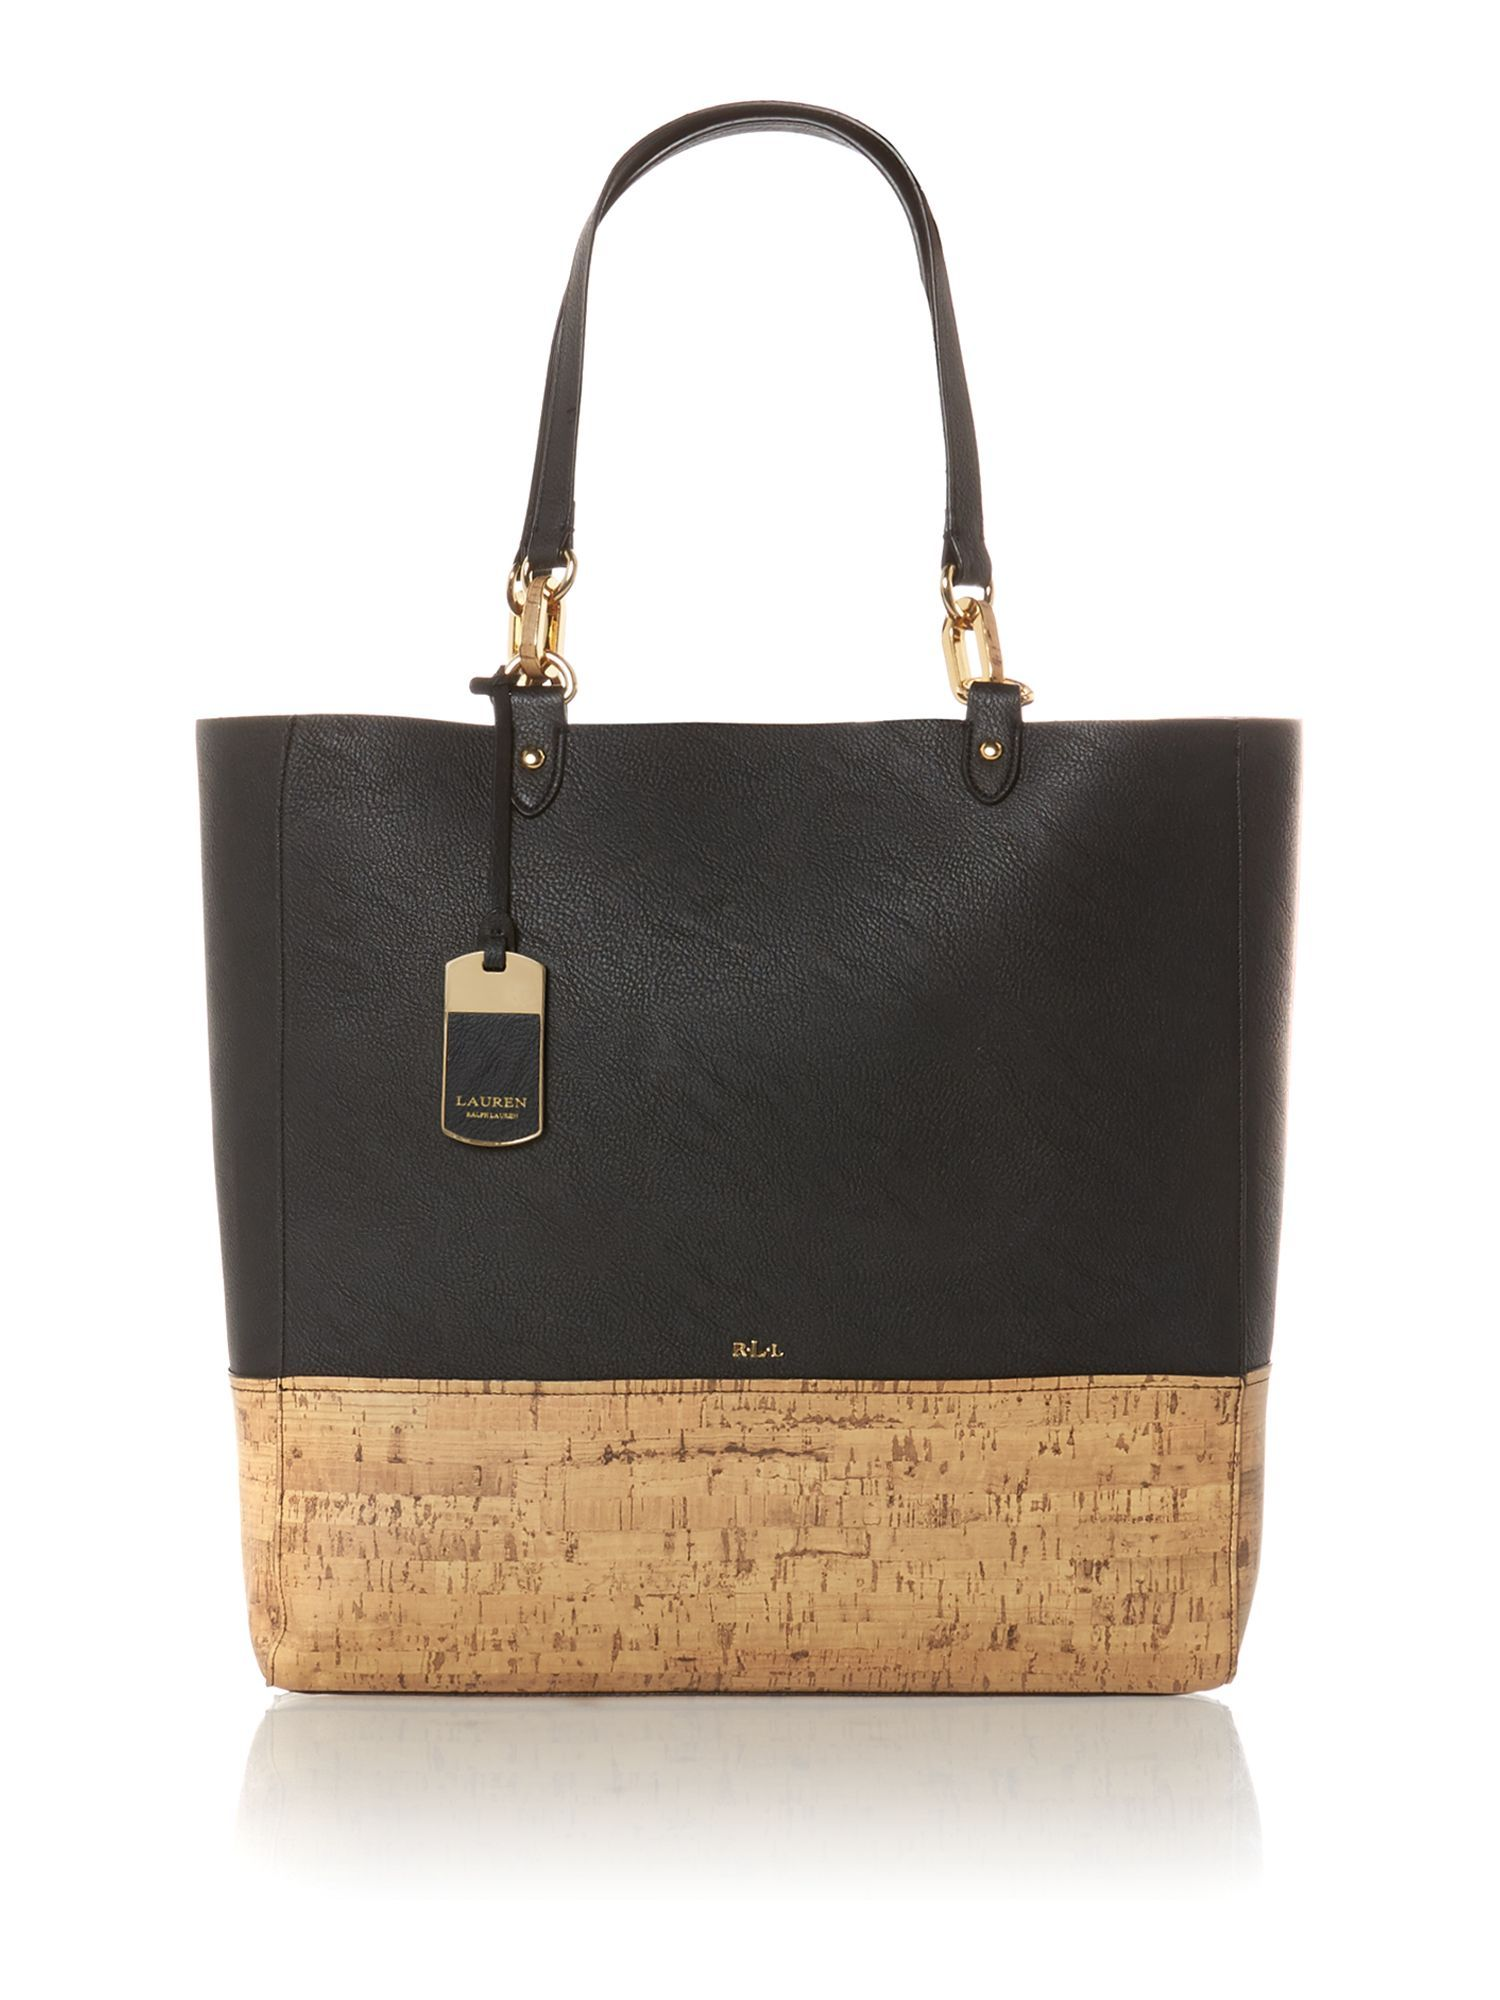 8a667d0c9b Lauren Ralph Lauren Bembridge black cork tote bag